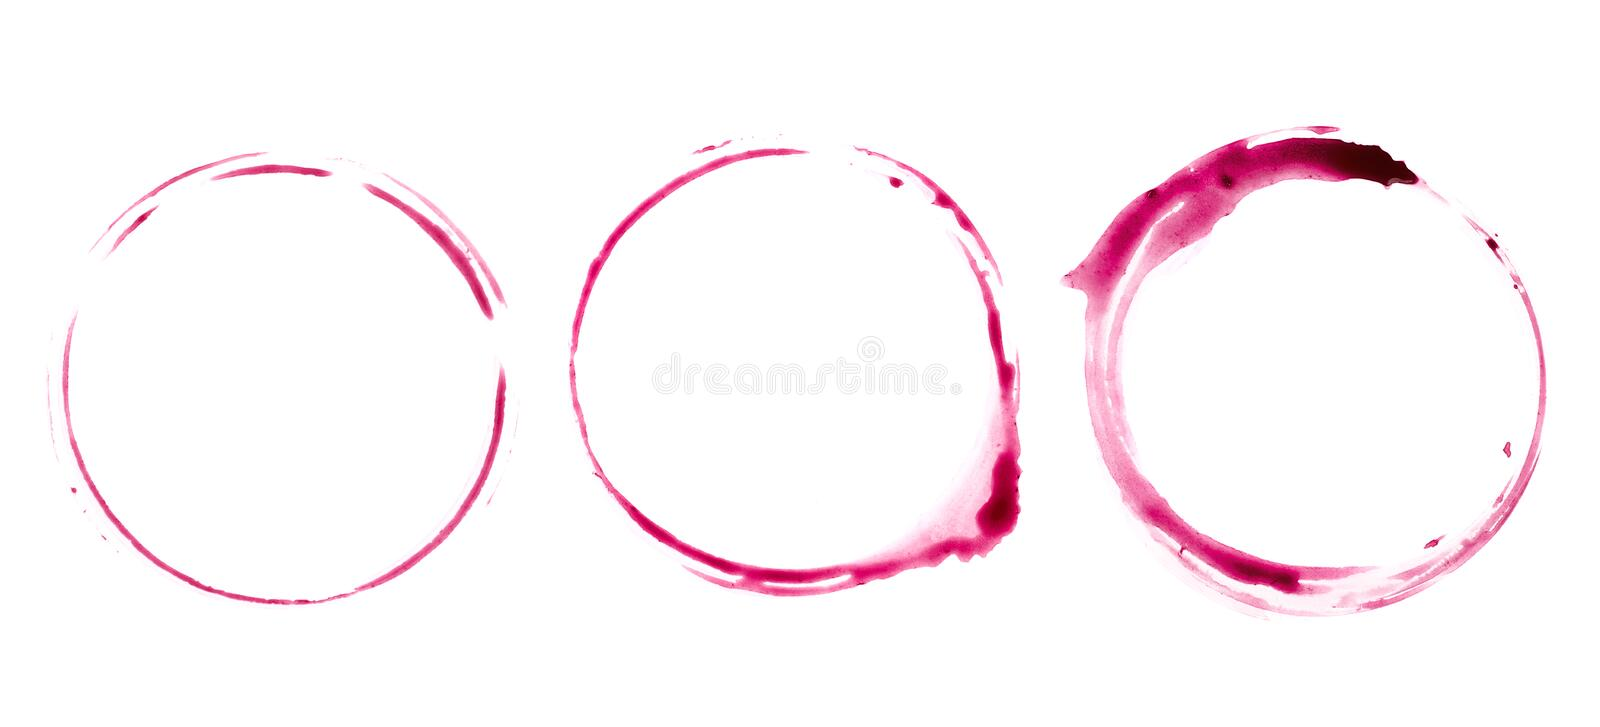 Round trace on the table from a glass of wine. Trace on the table from a glass of red wine stock images